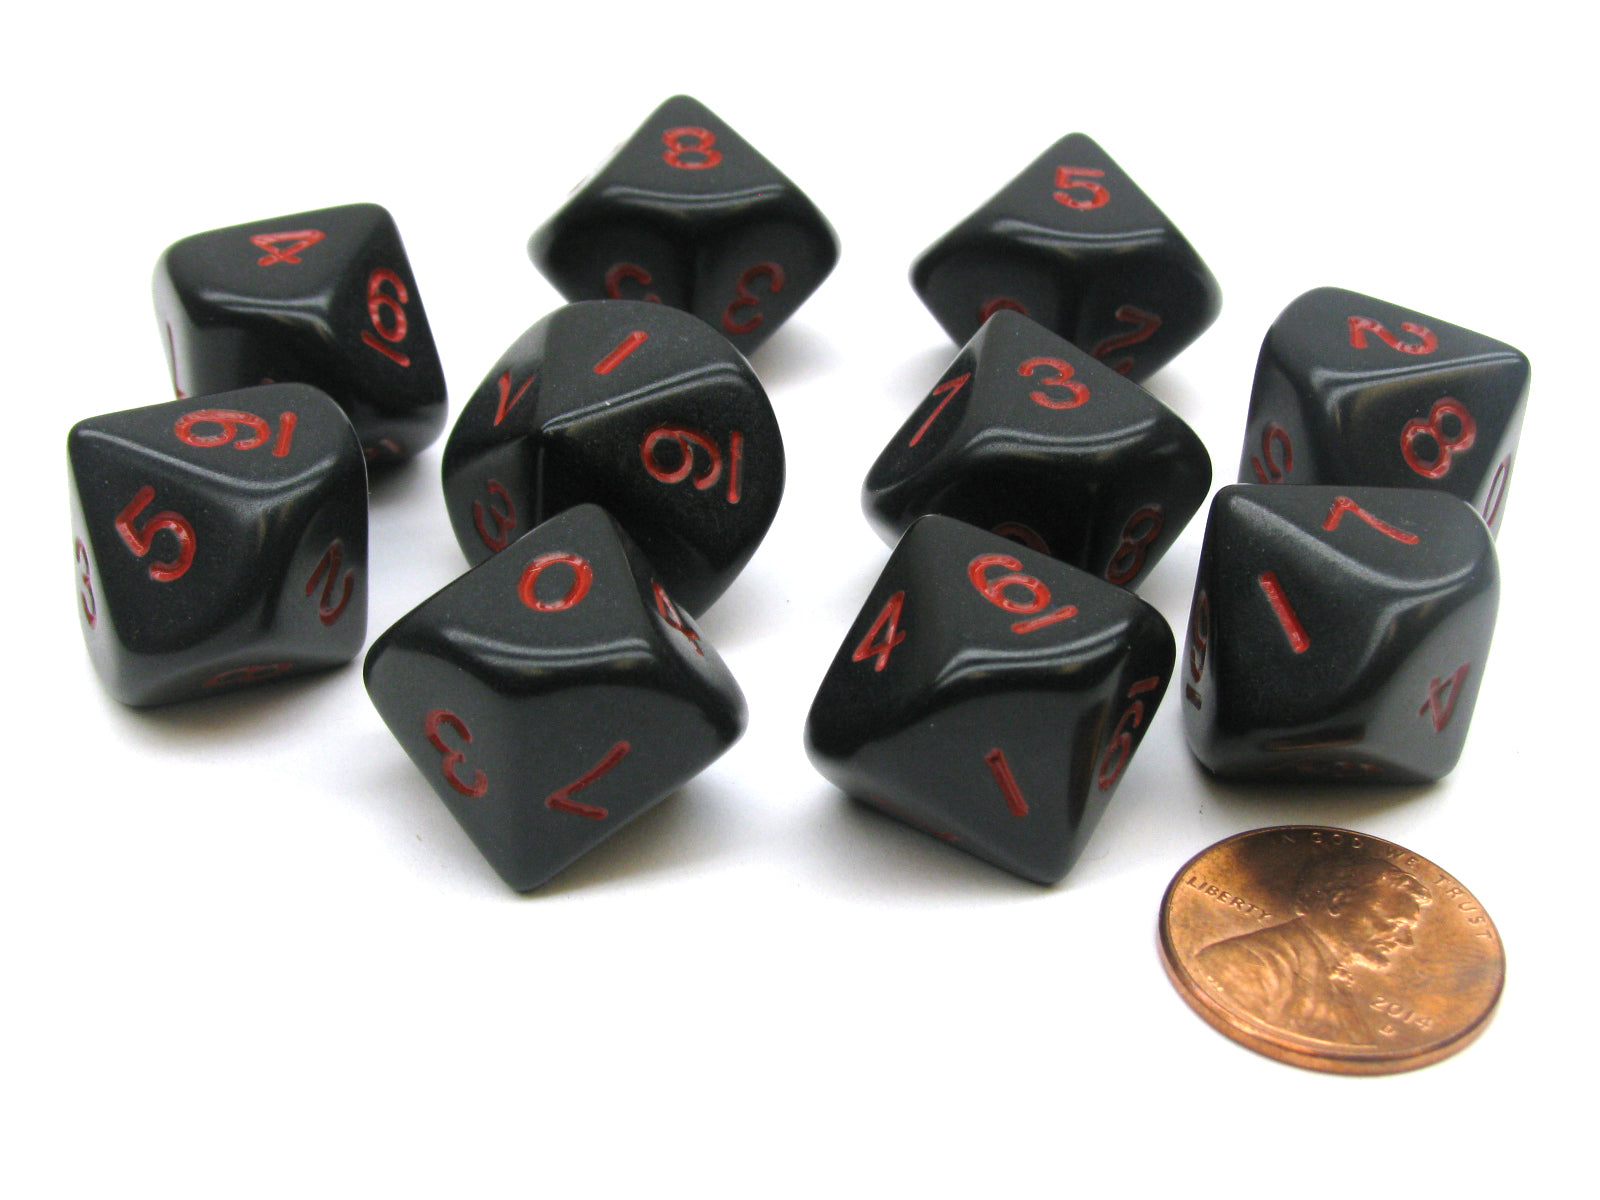 Set of 10 D10 10 Sided 16mm Opaque Dice - Black with Red Numbers